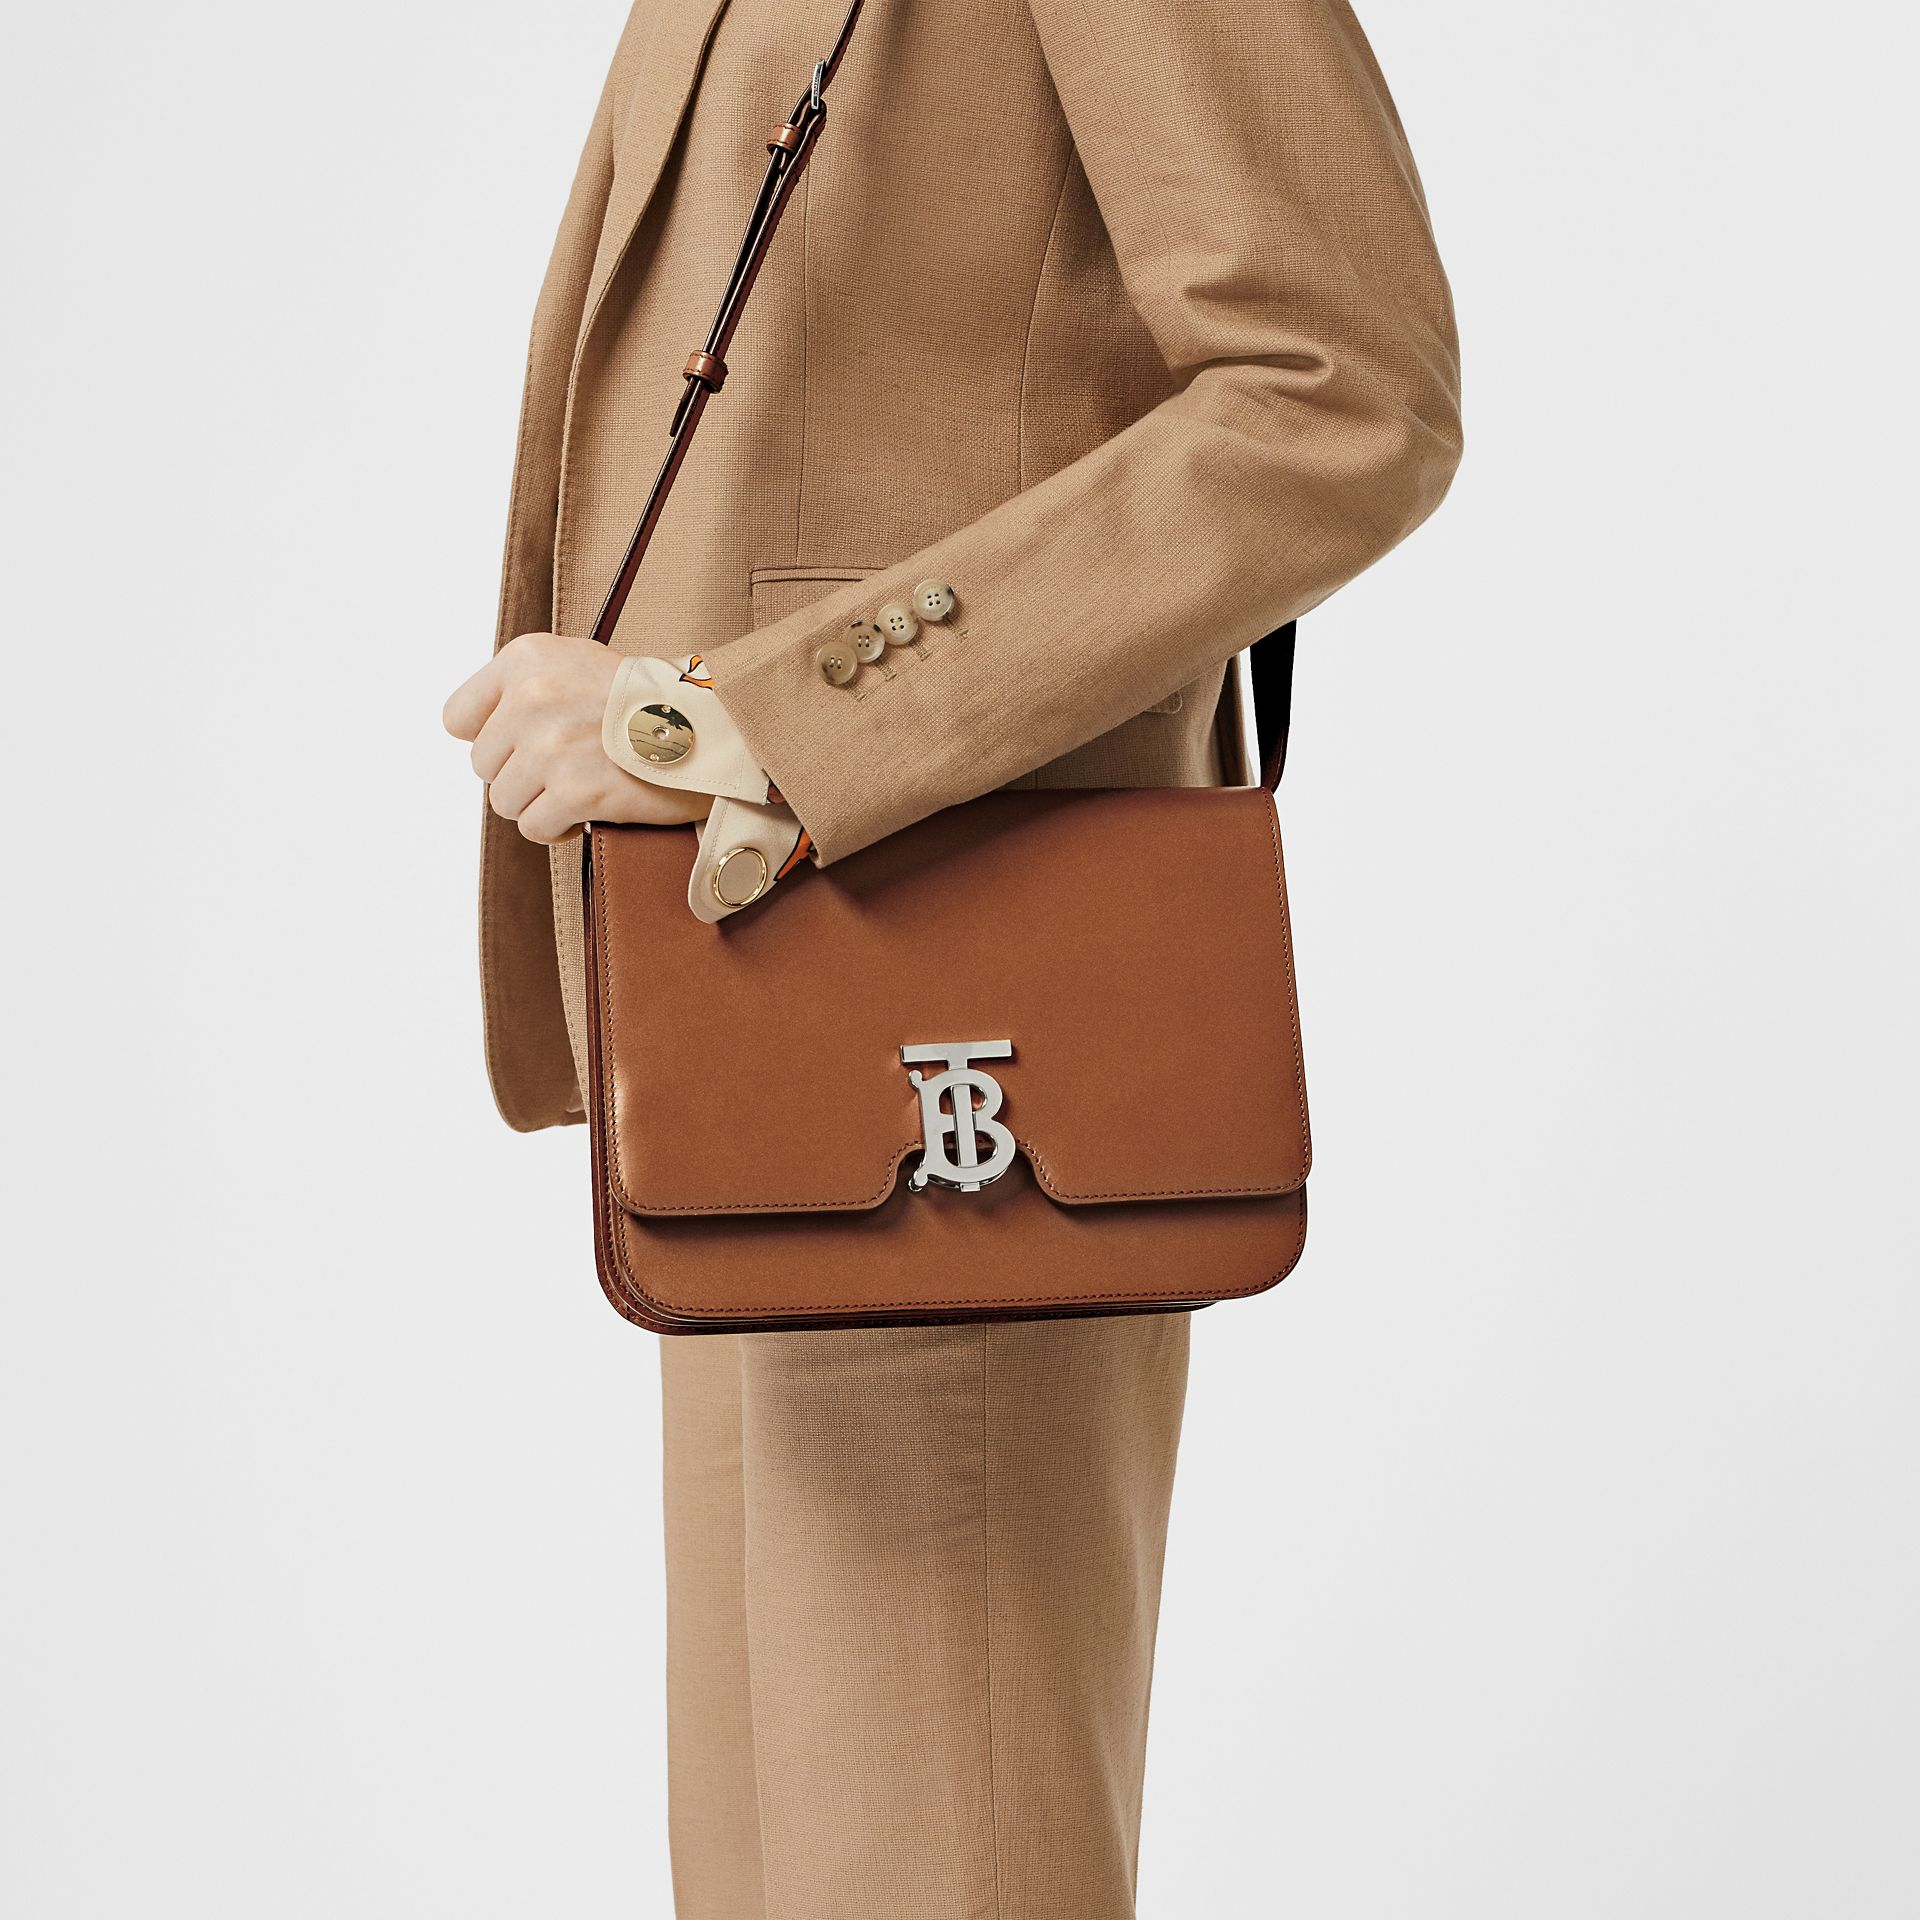 Medium Leather TB Bag in Malt Brown - Women | Burberry Canada - gallery image 2